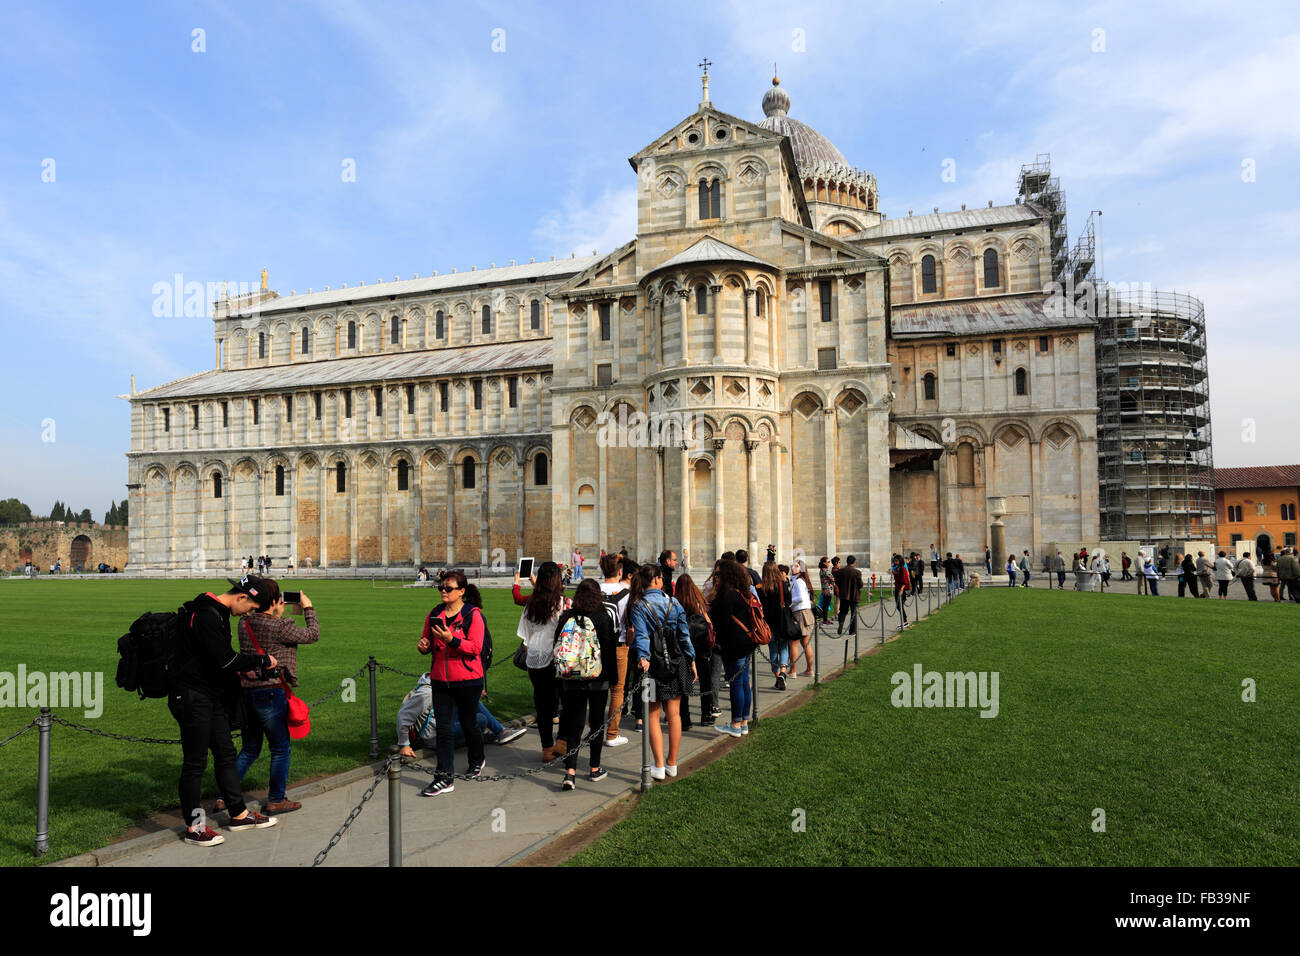 Summer view of the Duomo Cathedral, Square of Miracles, Pisa city, UNESCO World Heritage Site, Tuscany, Italy, Europe. Stock Photo